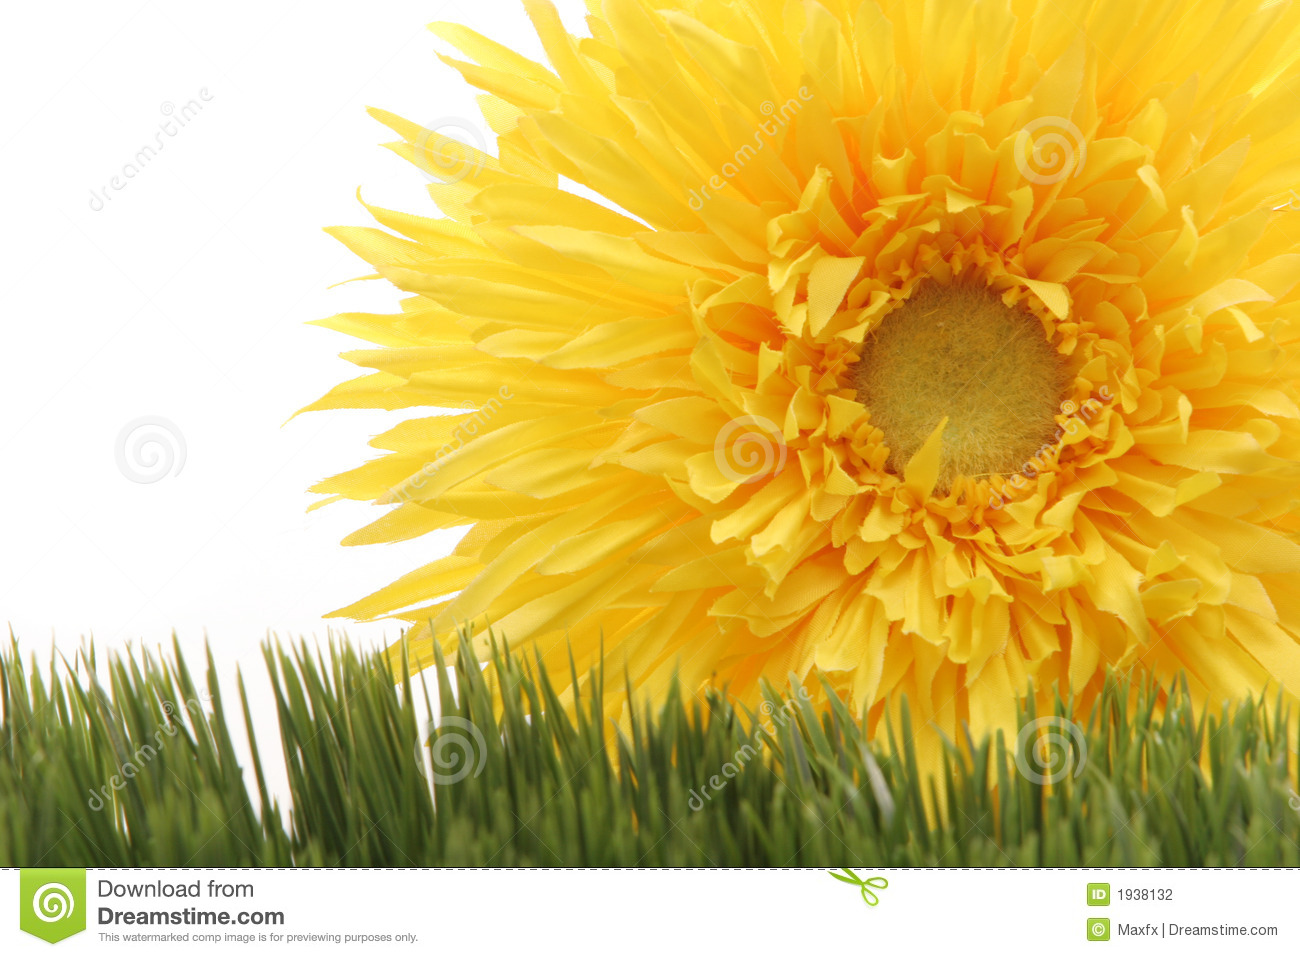 Beautiful Yellow Gerbera Daisy Flower On Green Grass Isolated On